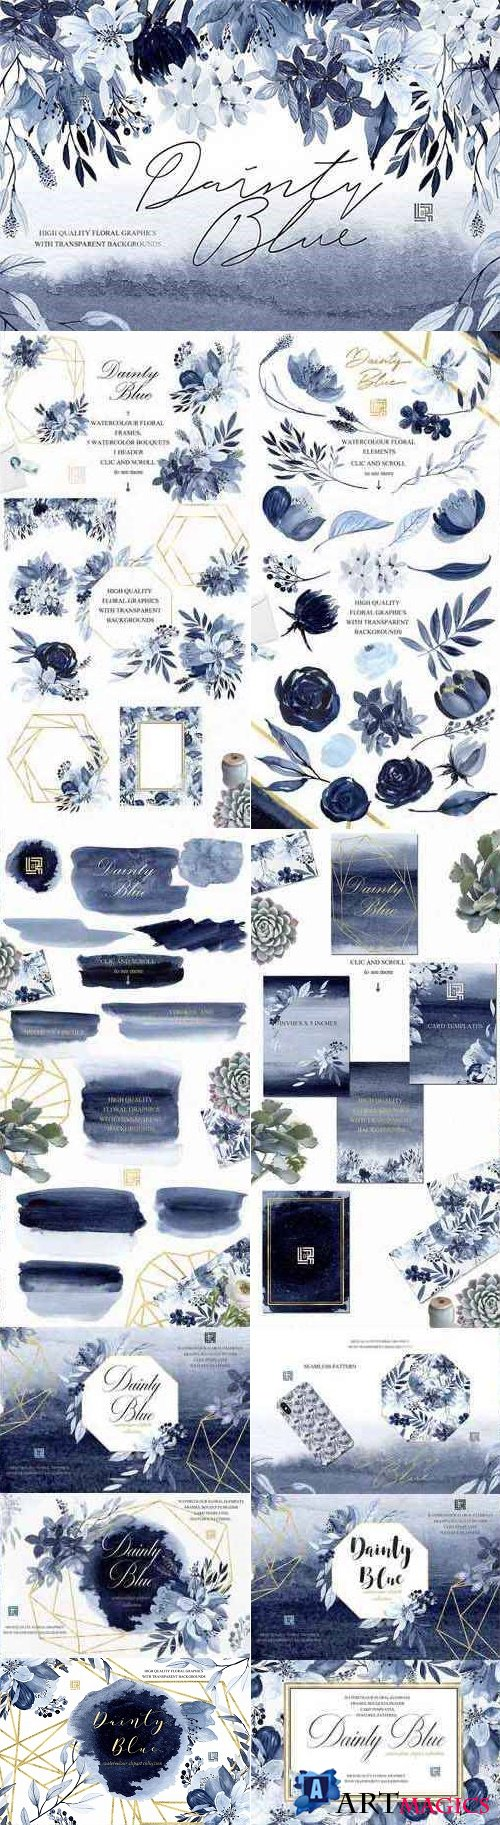 Dainty blue Navy blue flowers - 2414342